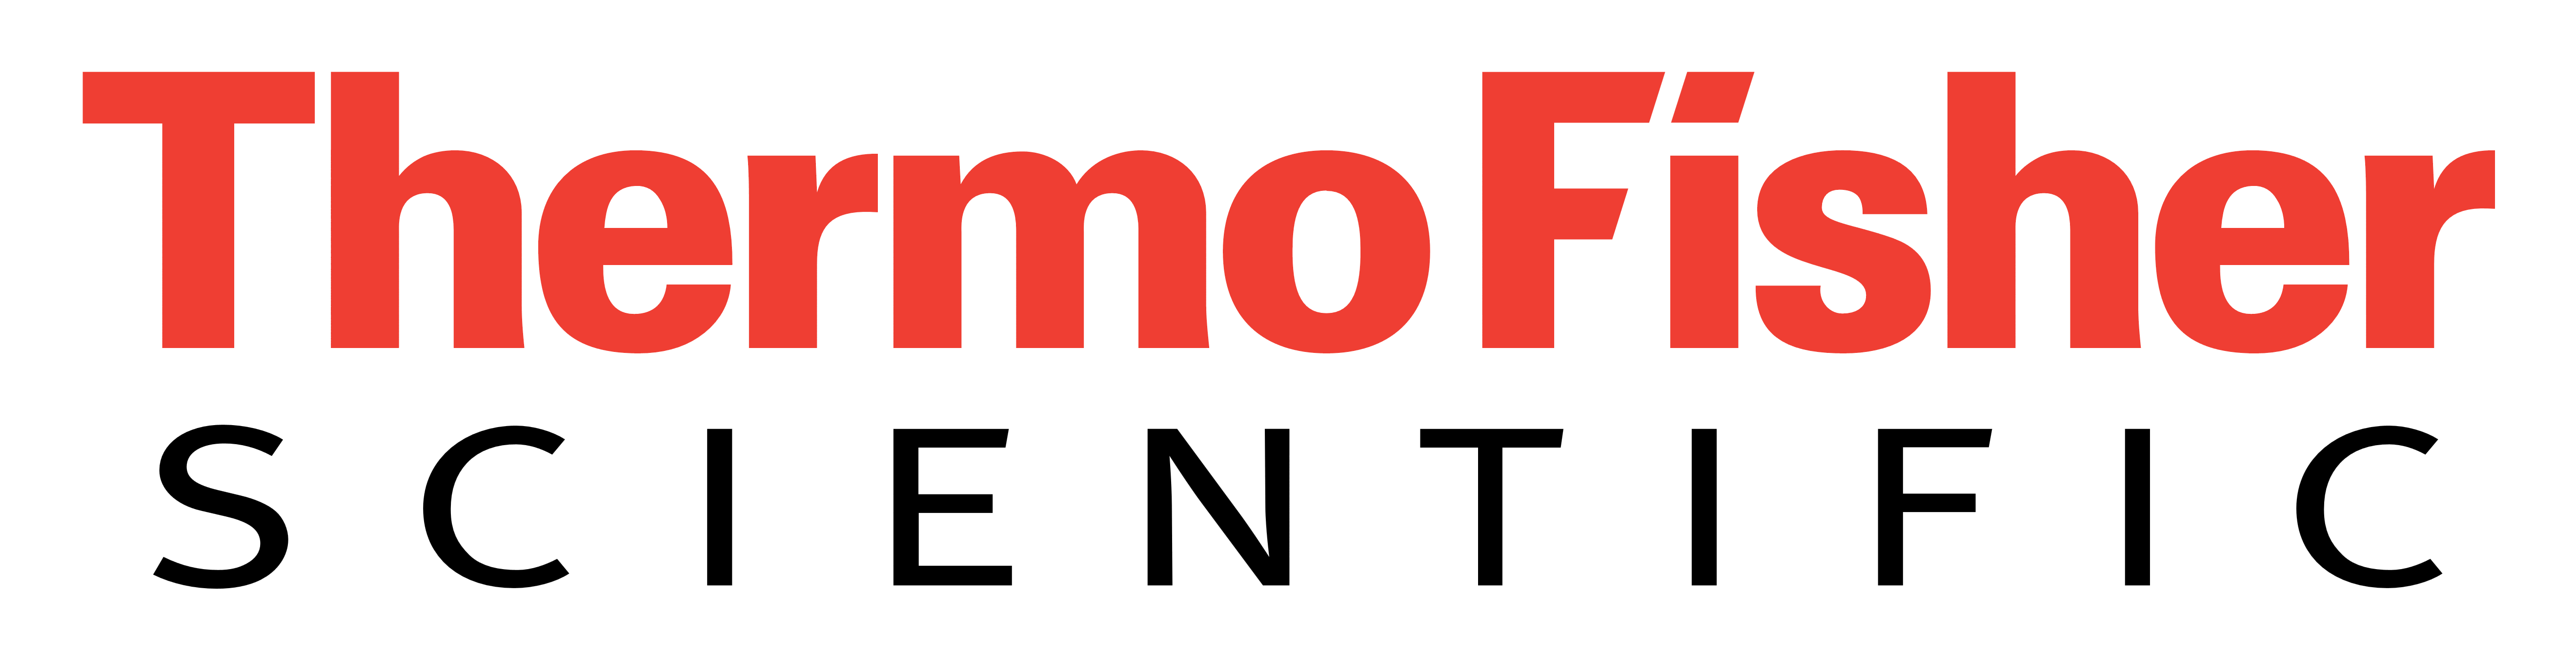 https://www.thermofisher.com/de/de/home/brands/life-technologies.html